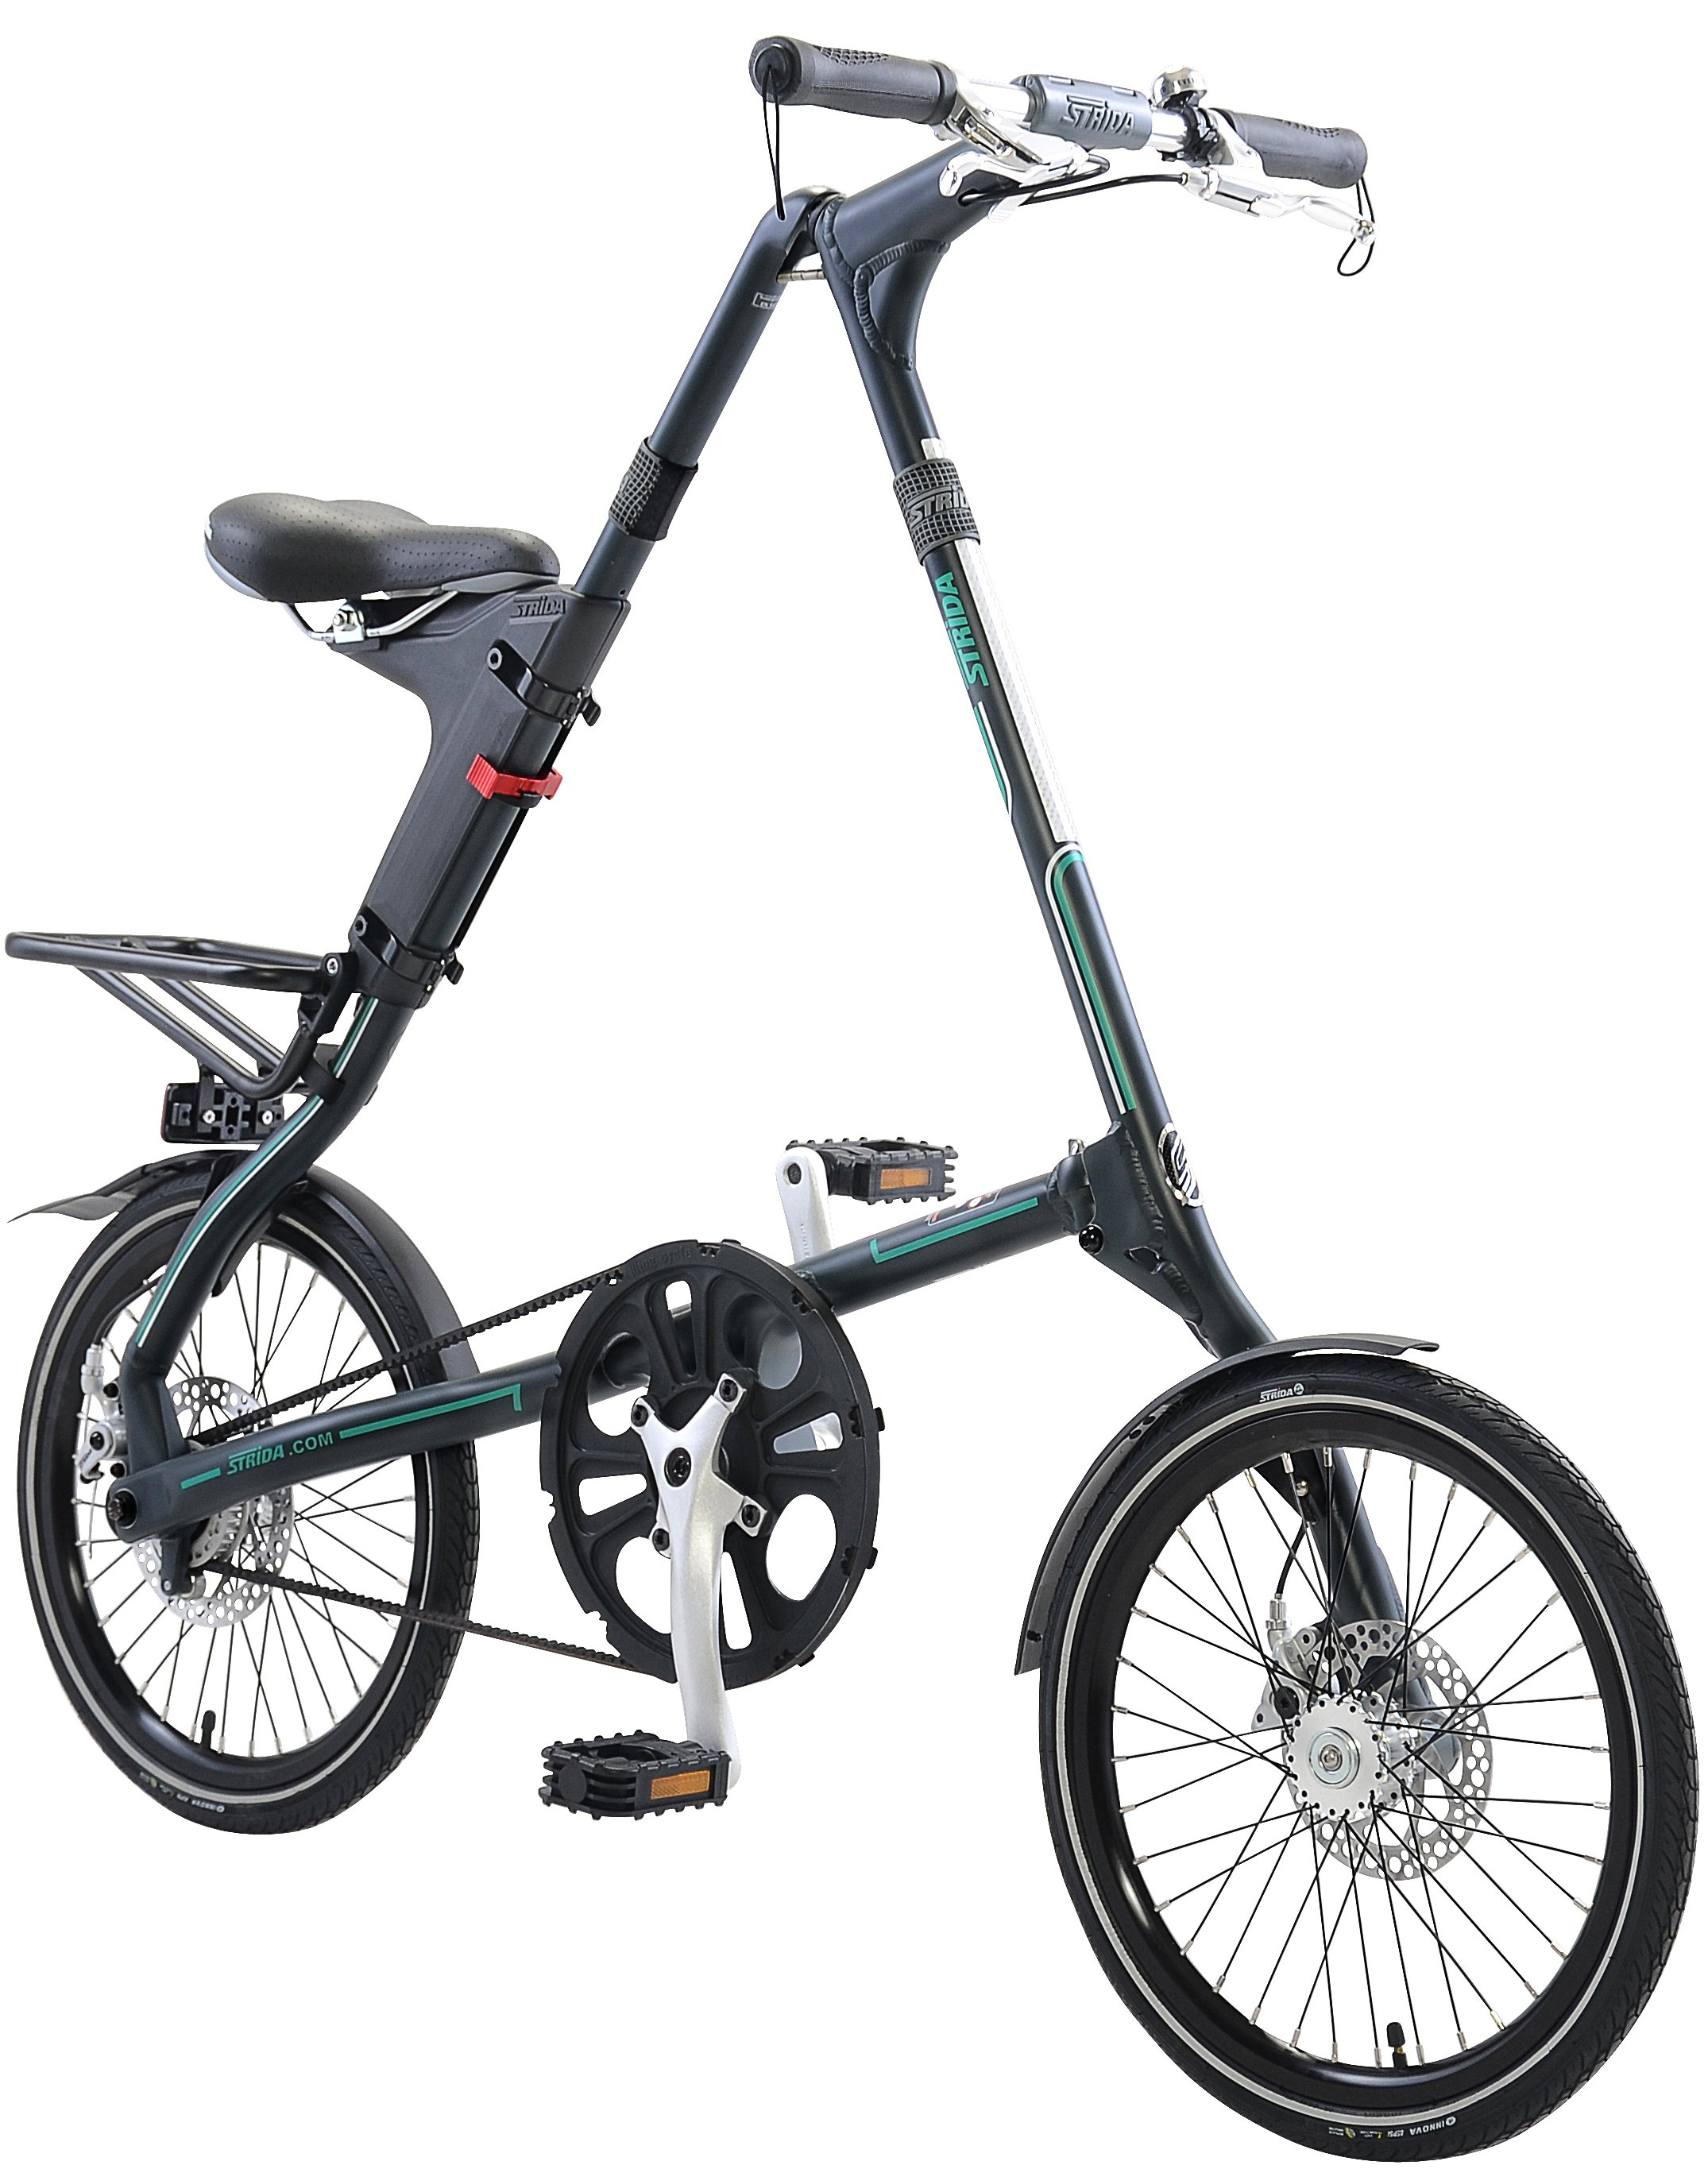 STRiDA SX Folding Urban Single Speed Bike